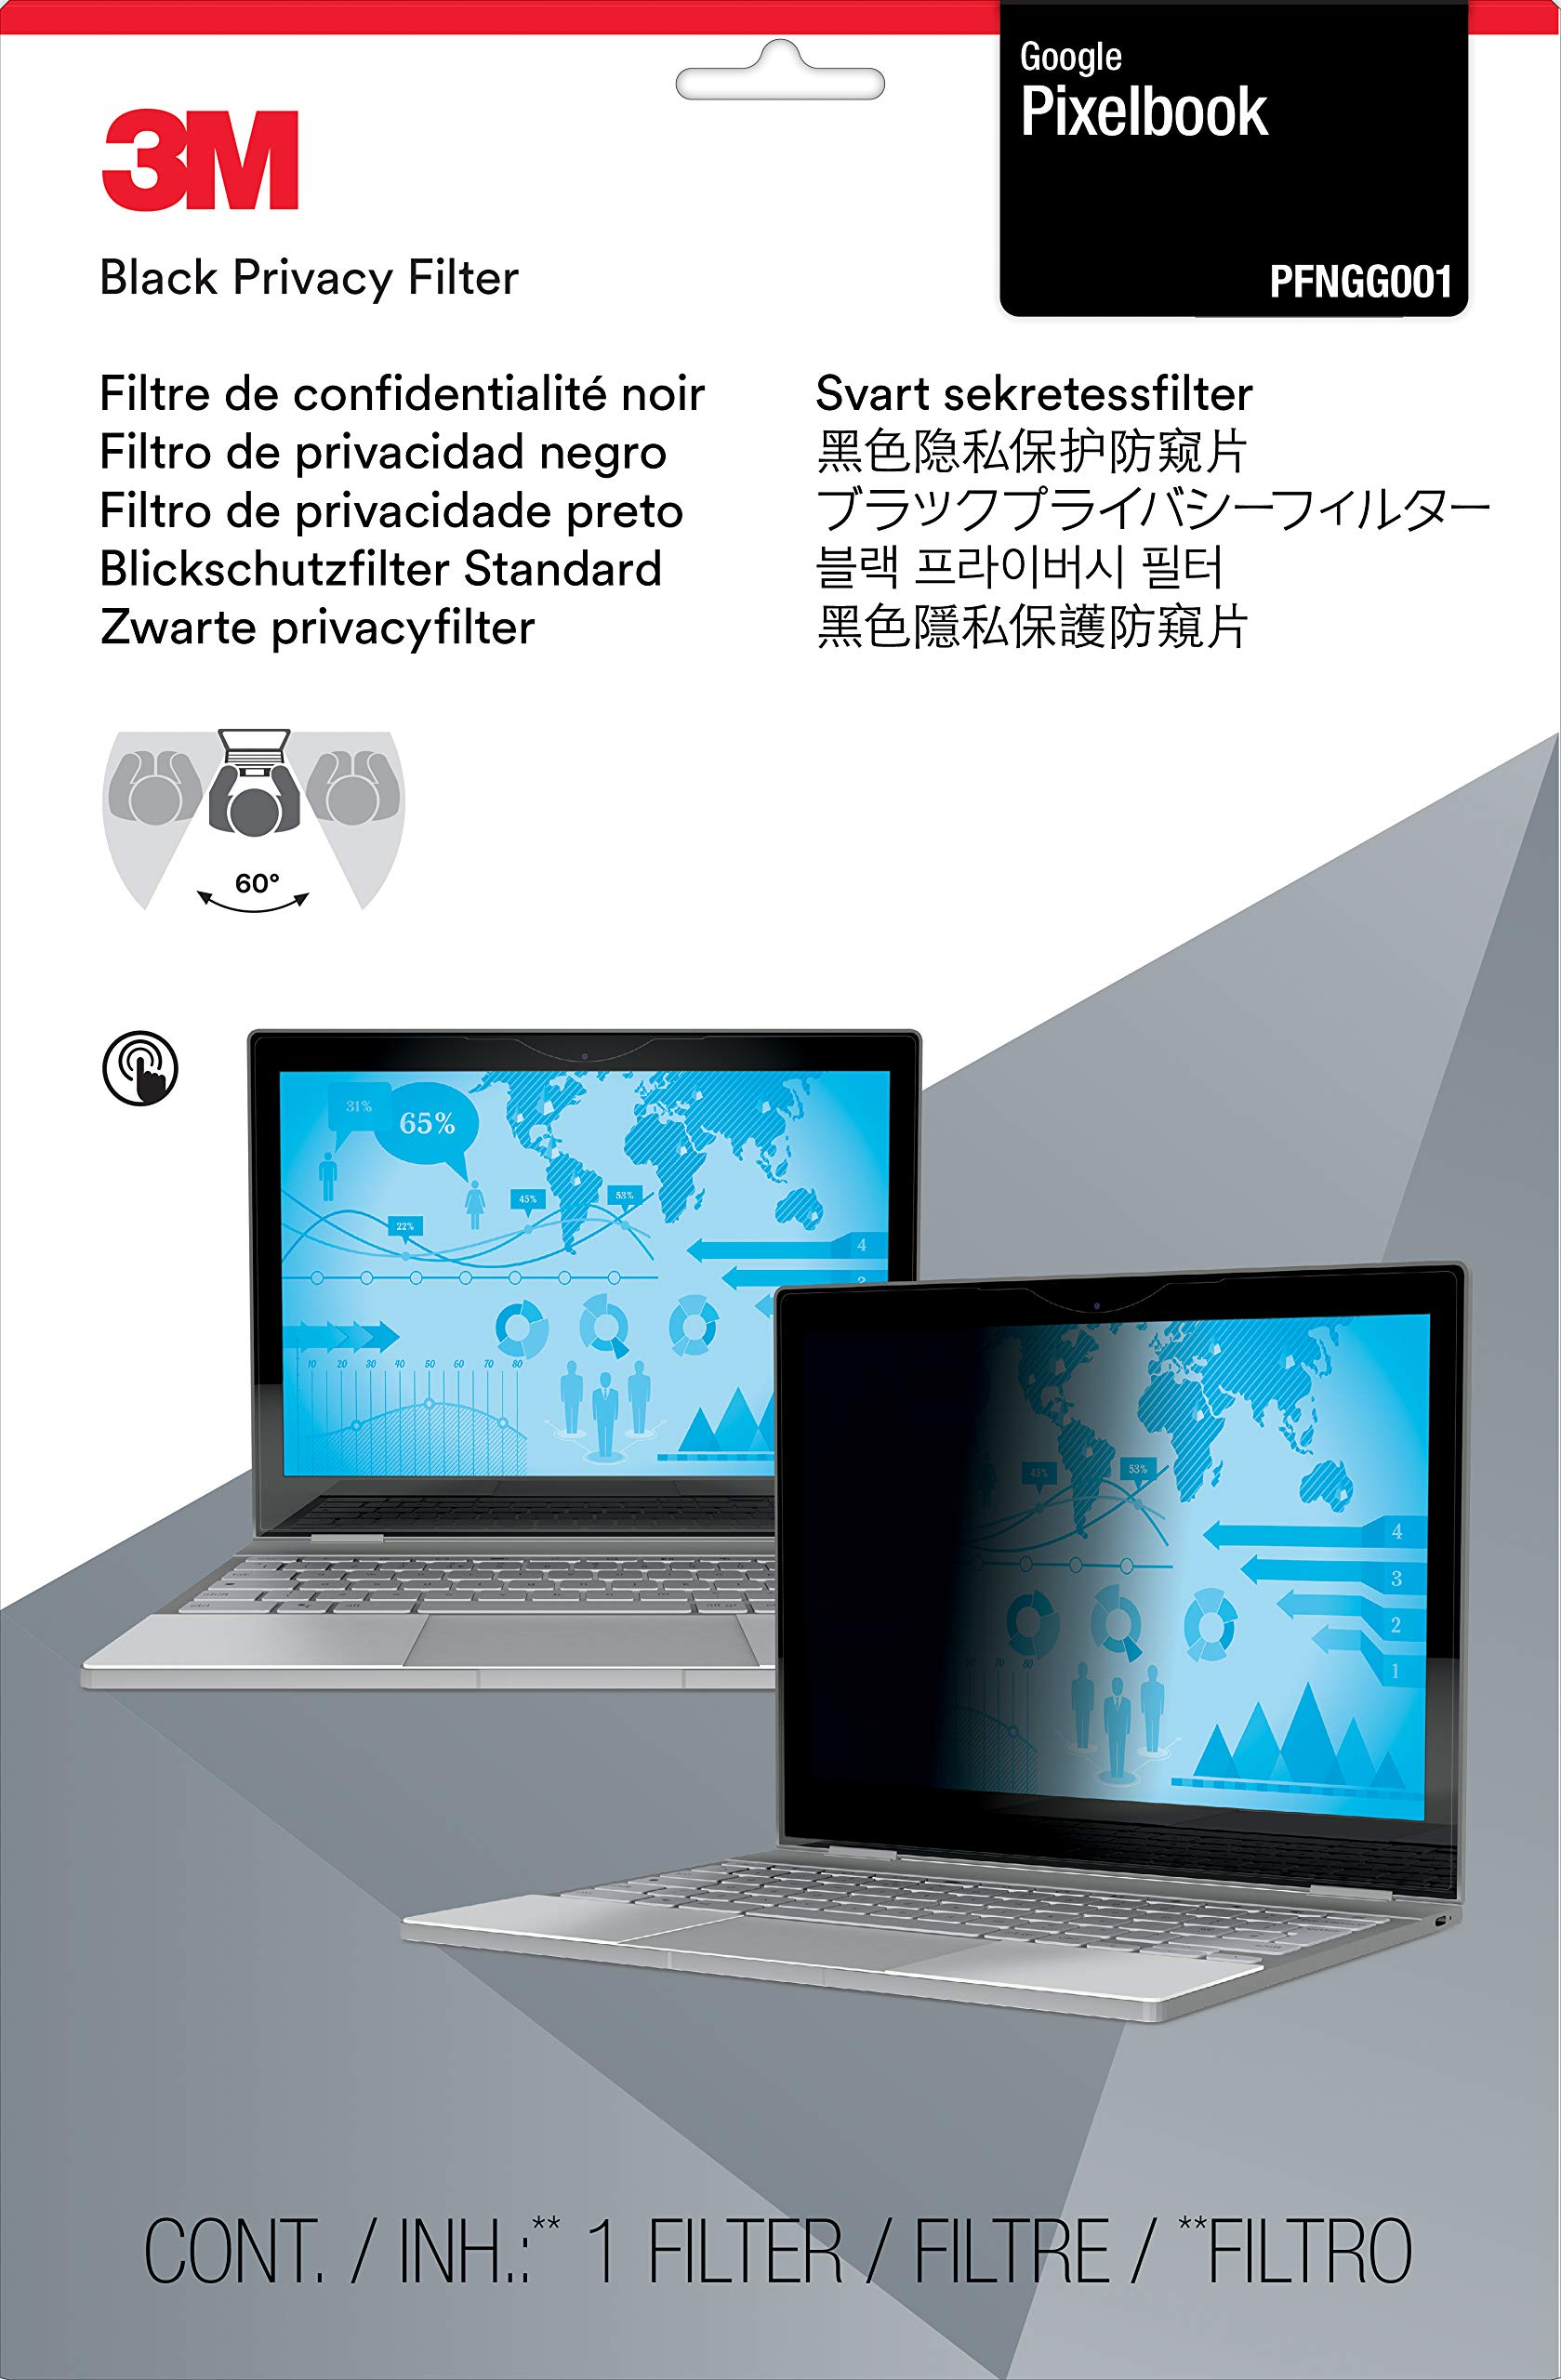 3M Privacy Filters Filter for Google Pixelbook (PFNGG001) by 3M (Image #2)